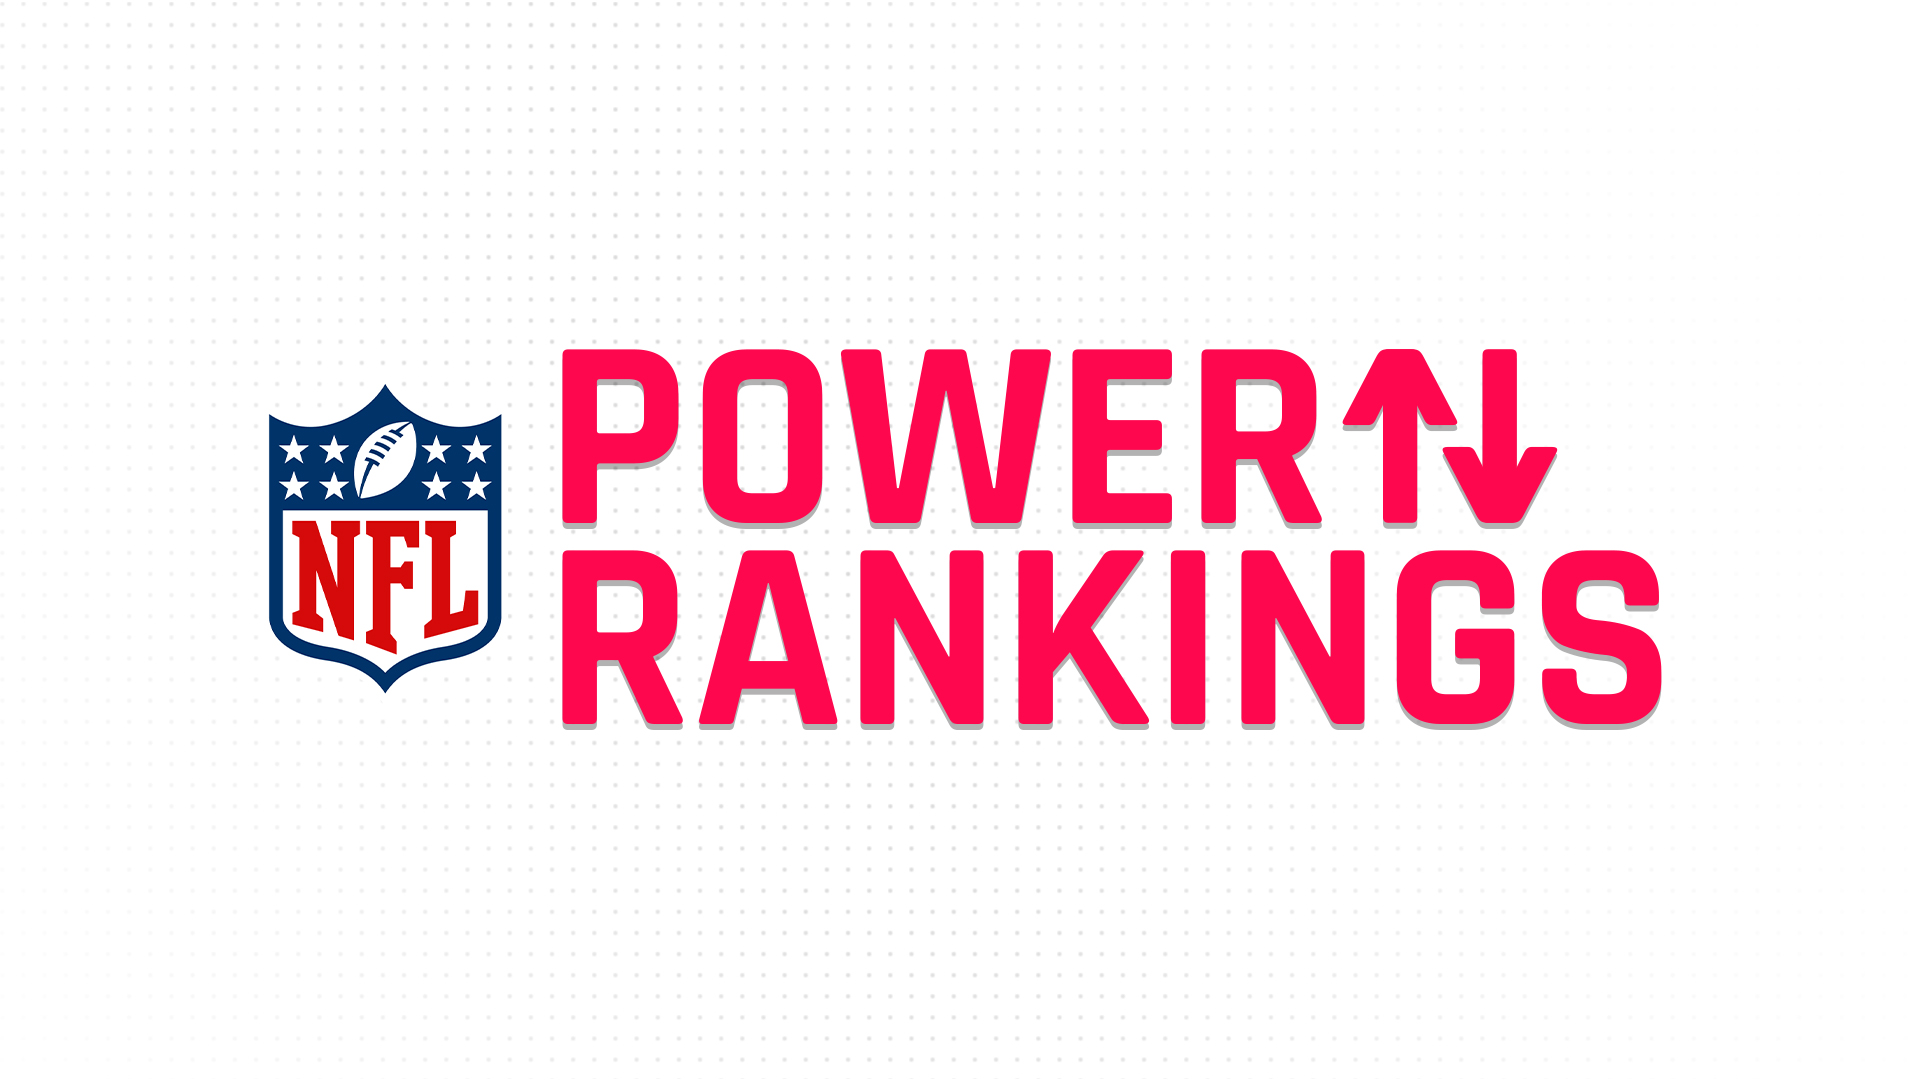 https://images.daznservices.com/di/library/sporting_news/31/88/nfl-power-rankings-082720-ftr_1smu04ar7xns1dxdh8k3yrwt8.jpg?t=900518260&w=%7Bwidth%7D&quality=80